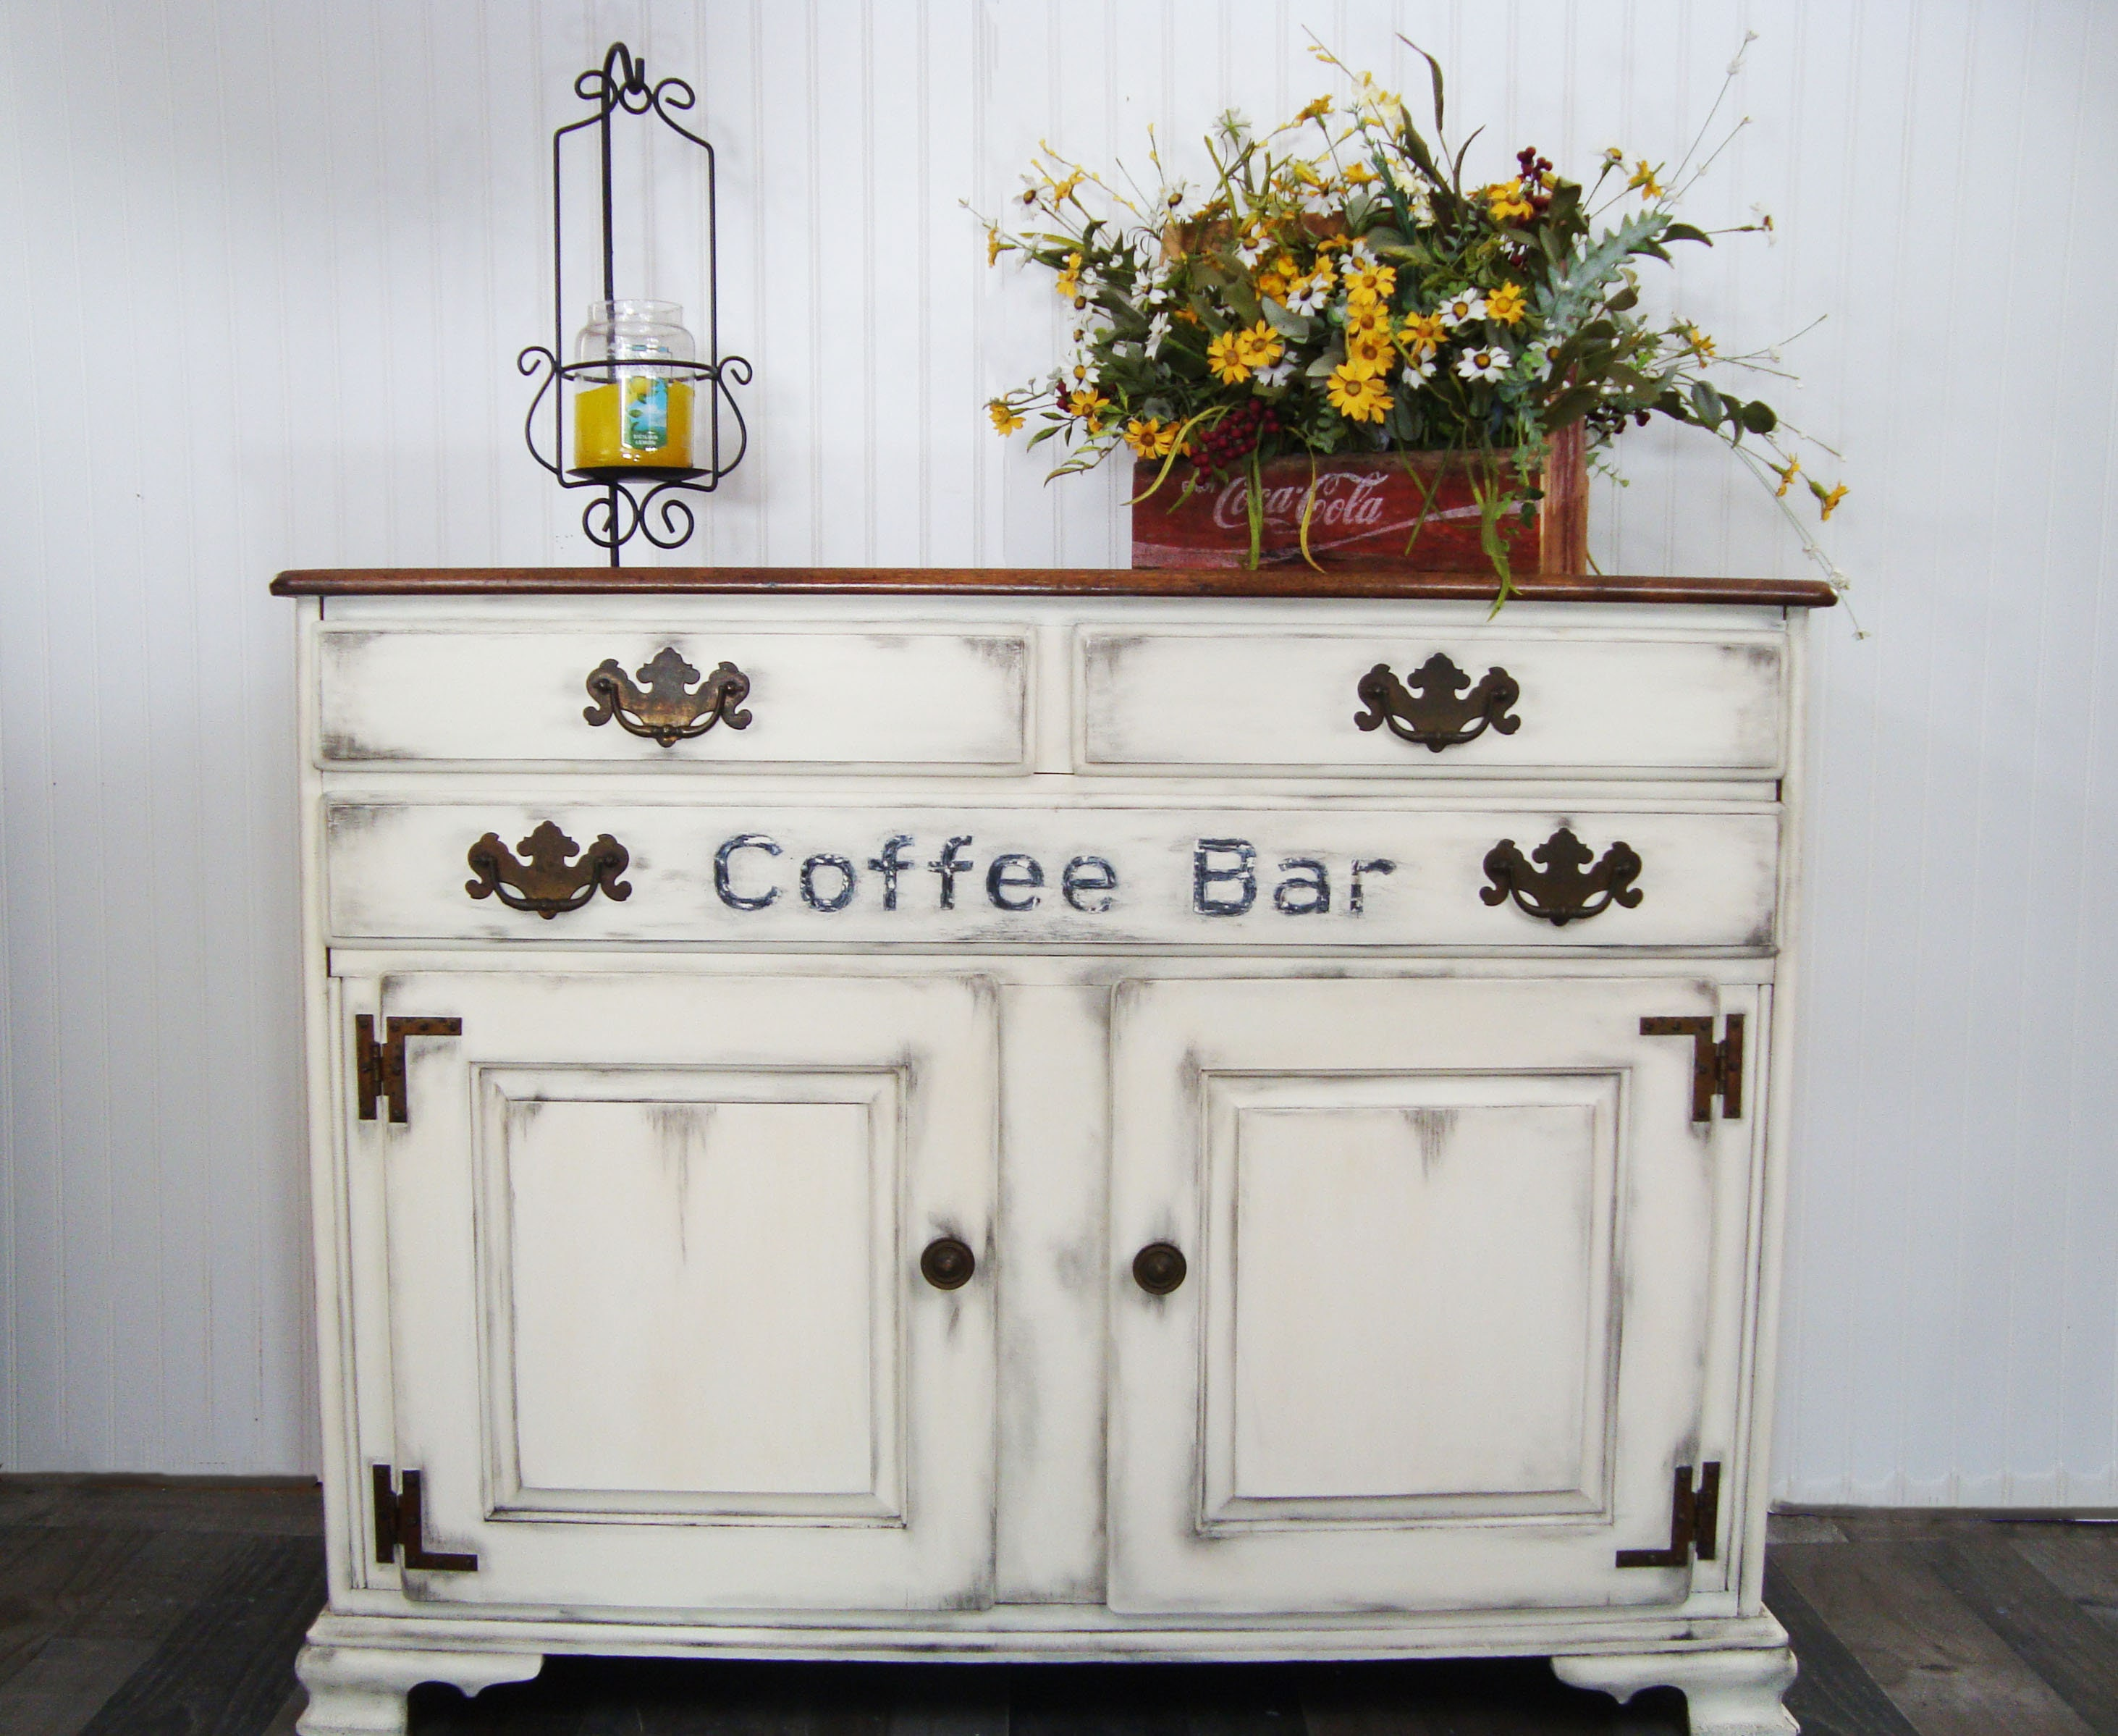 Buttercream Chalk Paint   Off White Paint   Free Shipping At 50.00 Dixie  Belle Chalk Paint   Furniture Paint   Cabinet Paint